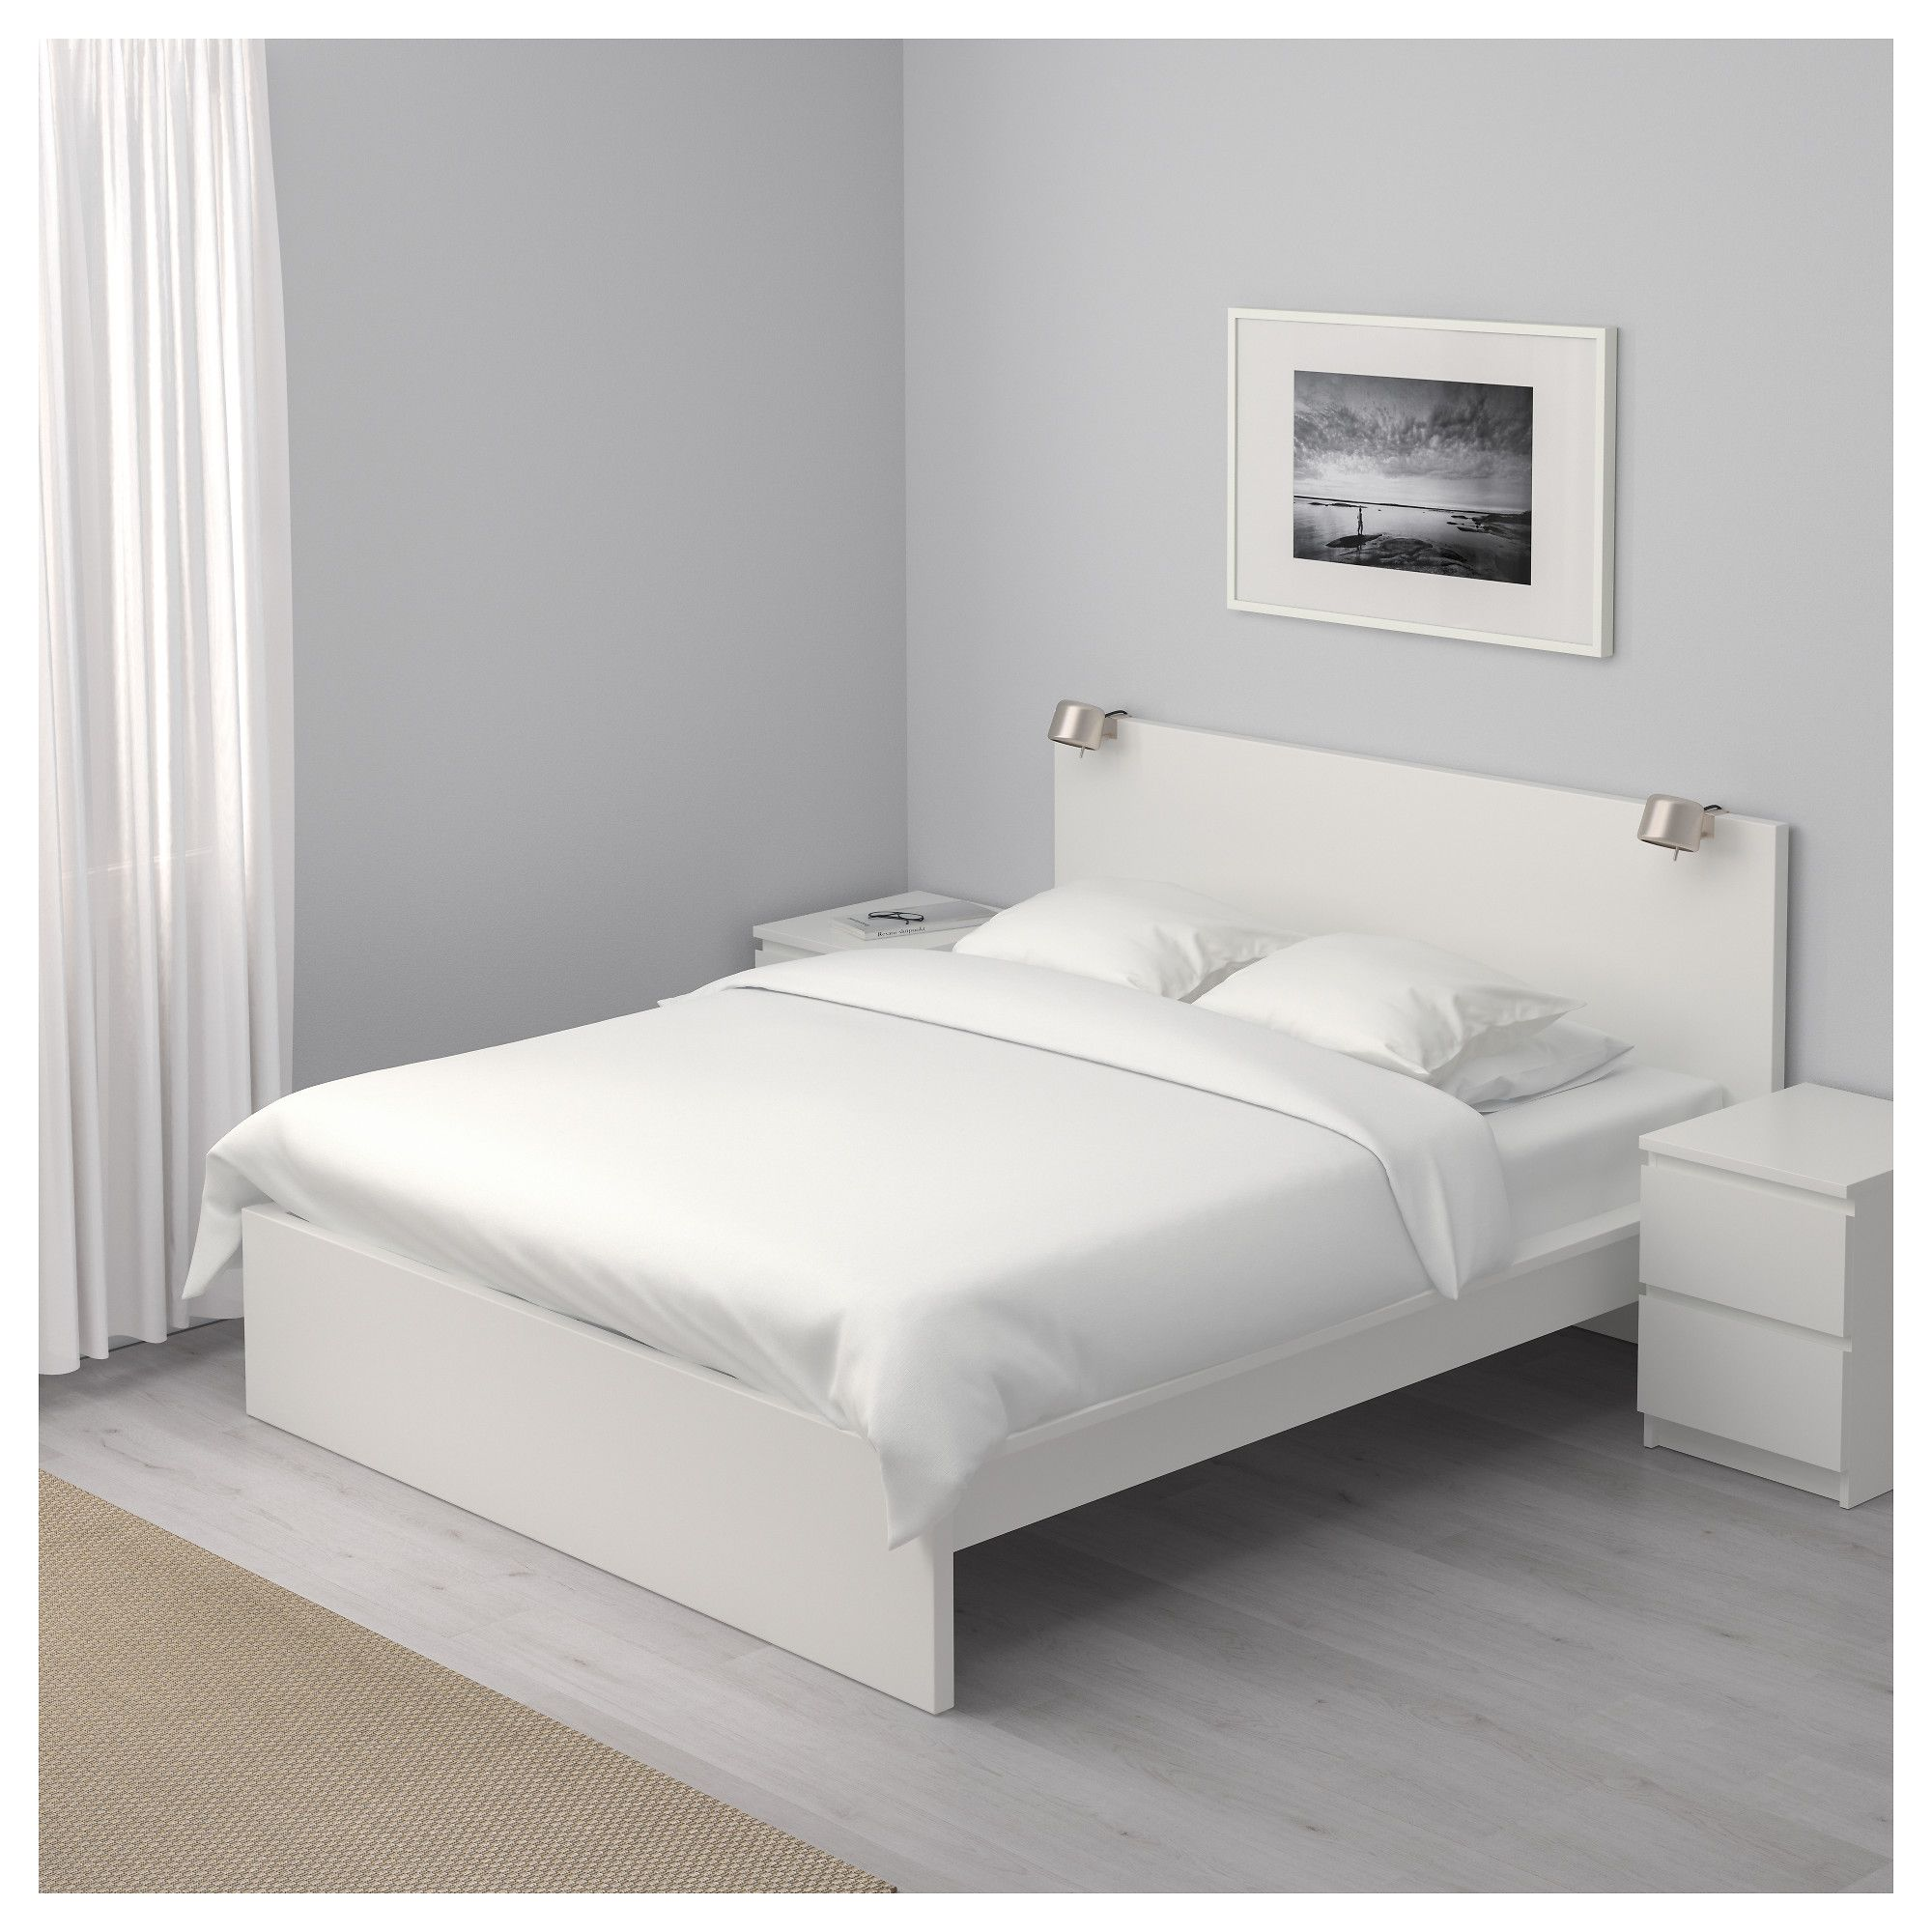 Malm White Luroy Bed Frame High Standard Double Ikea In 2020 Malm Bed Frame Malm Bed White Bed Frame